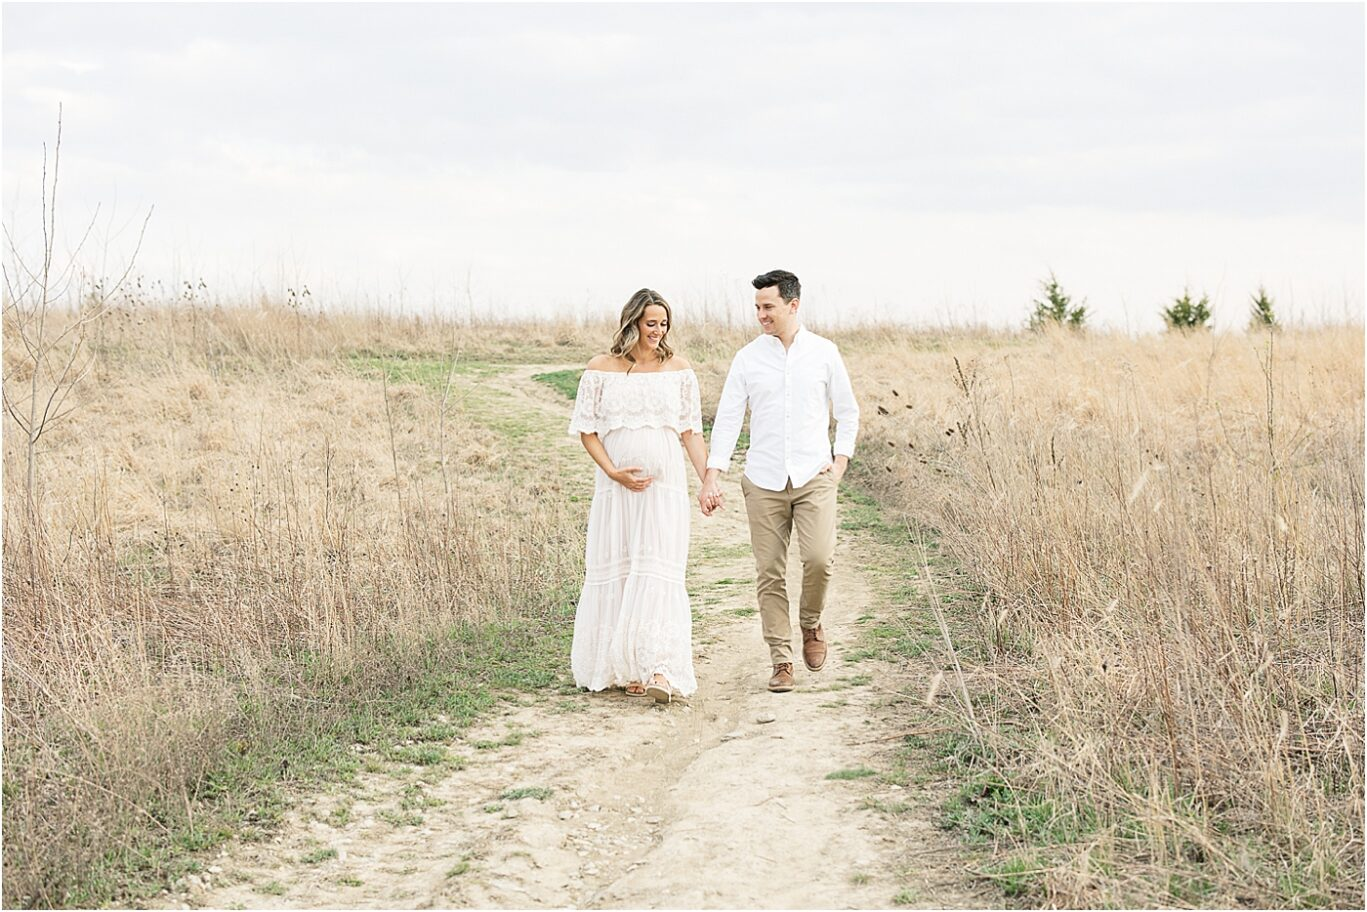 Parents to be walking through a field for maternity session with Lindsay Konopa Photography in Broad Ripple IN.